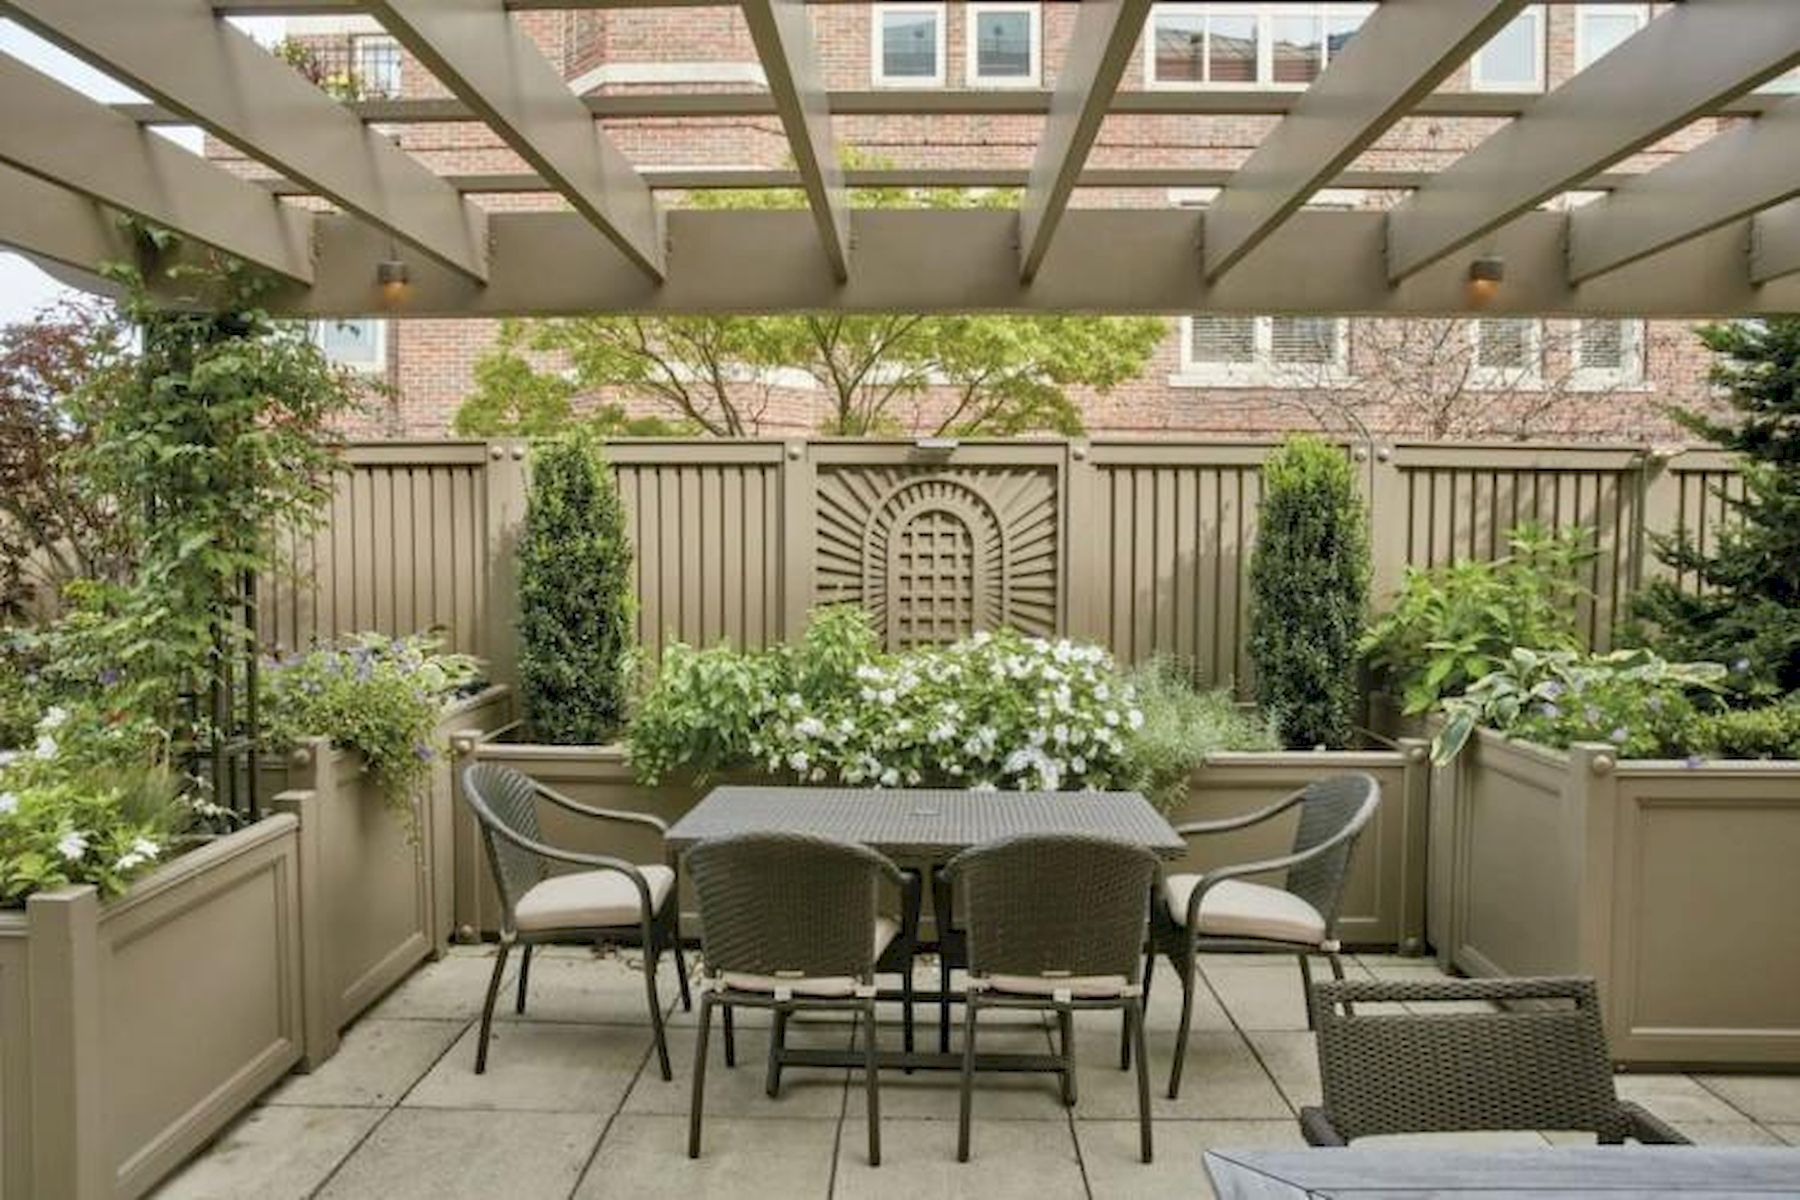 60 Awesome Backyard Privacy Design and Decor Ideas (12)